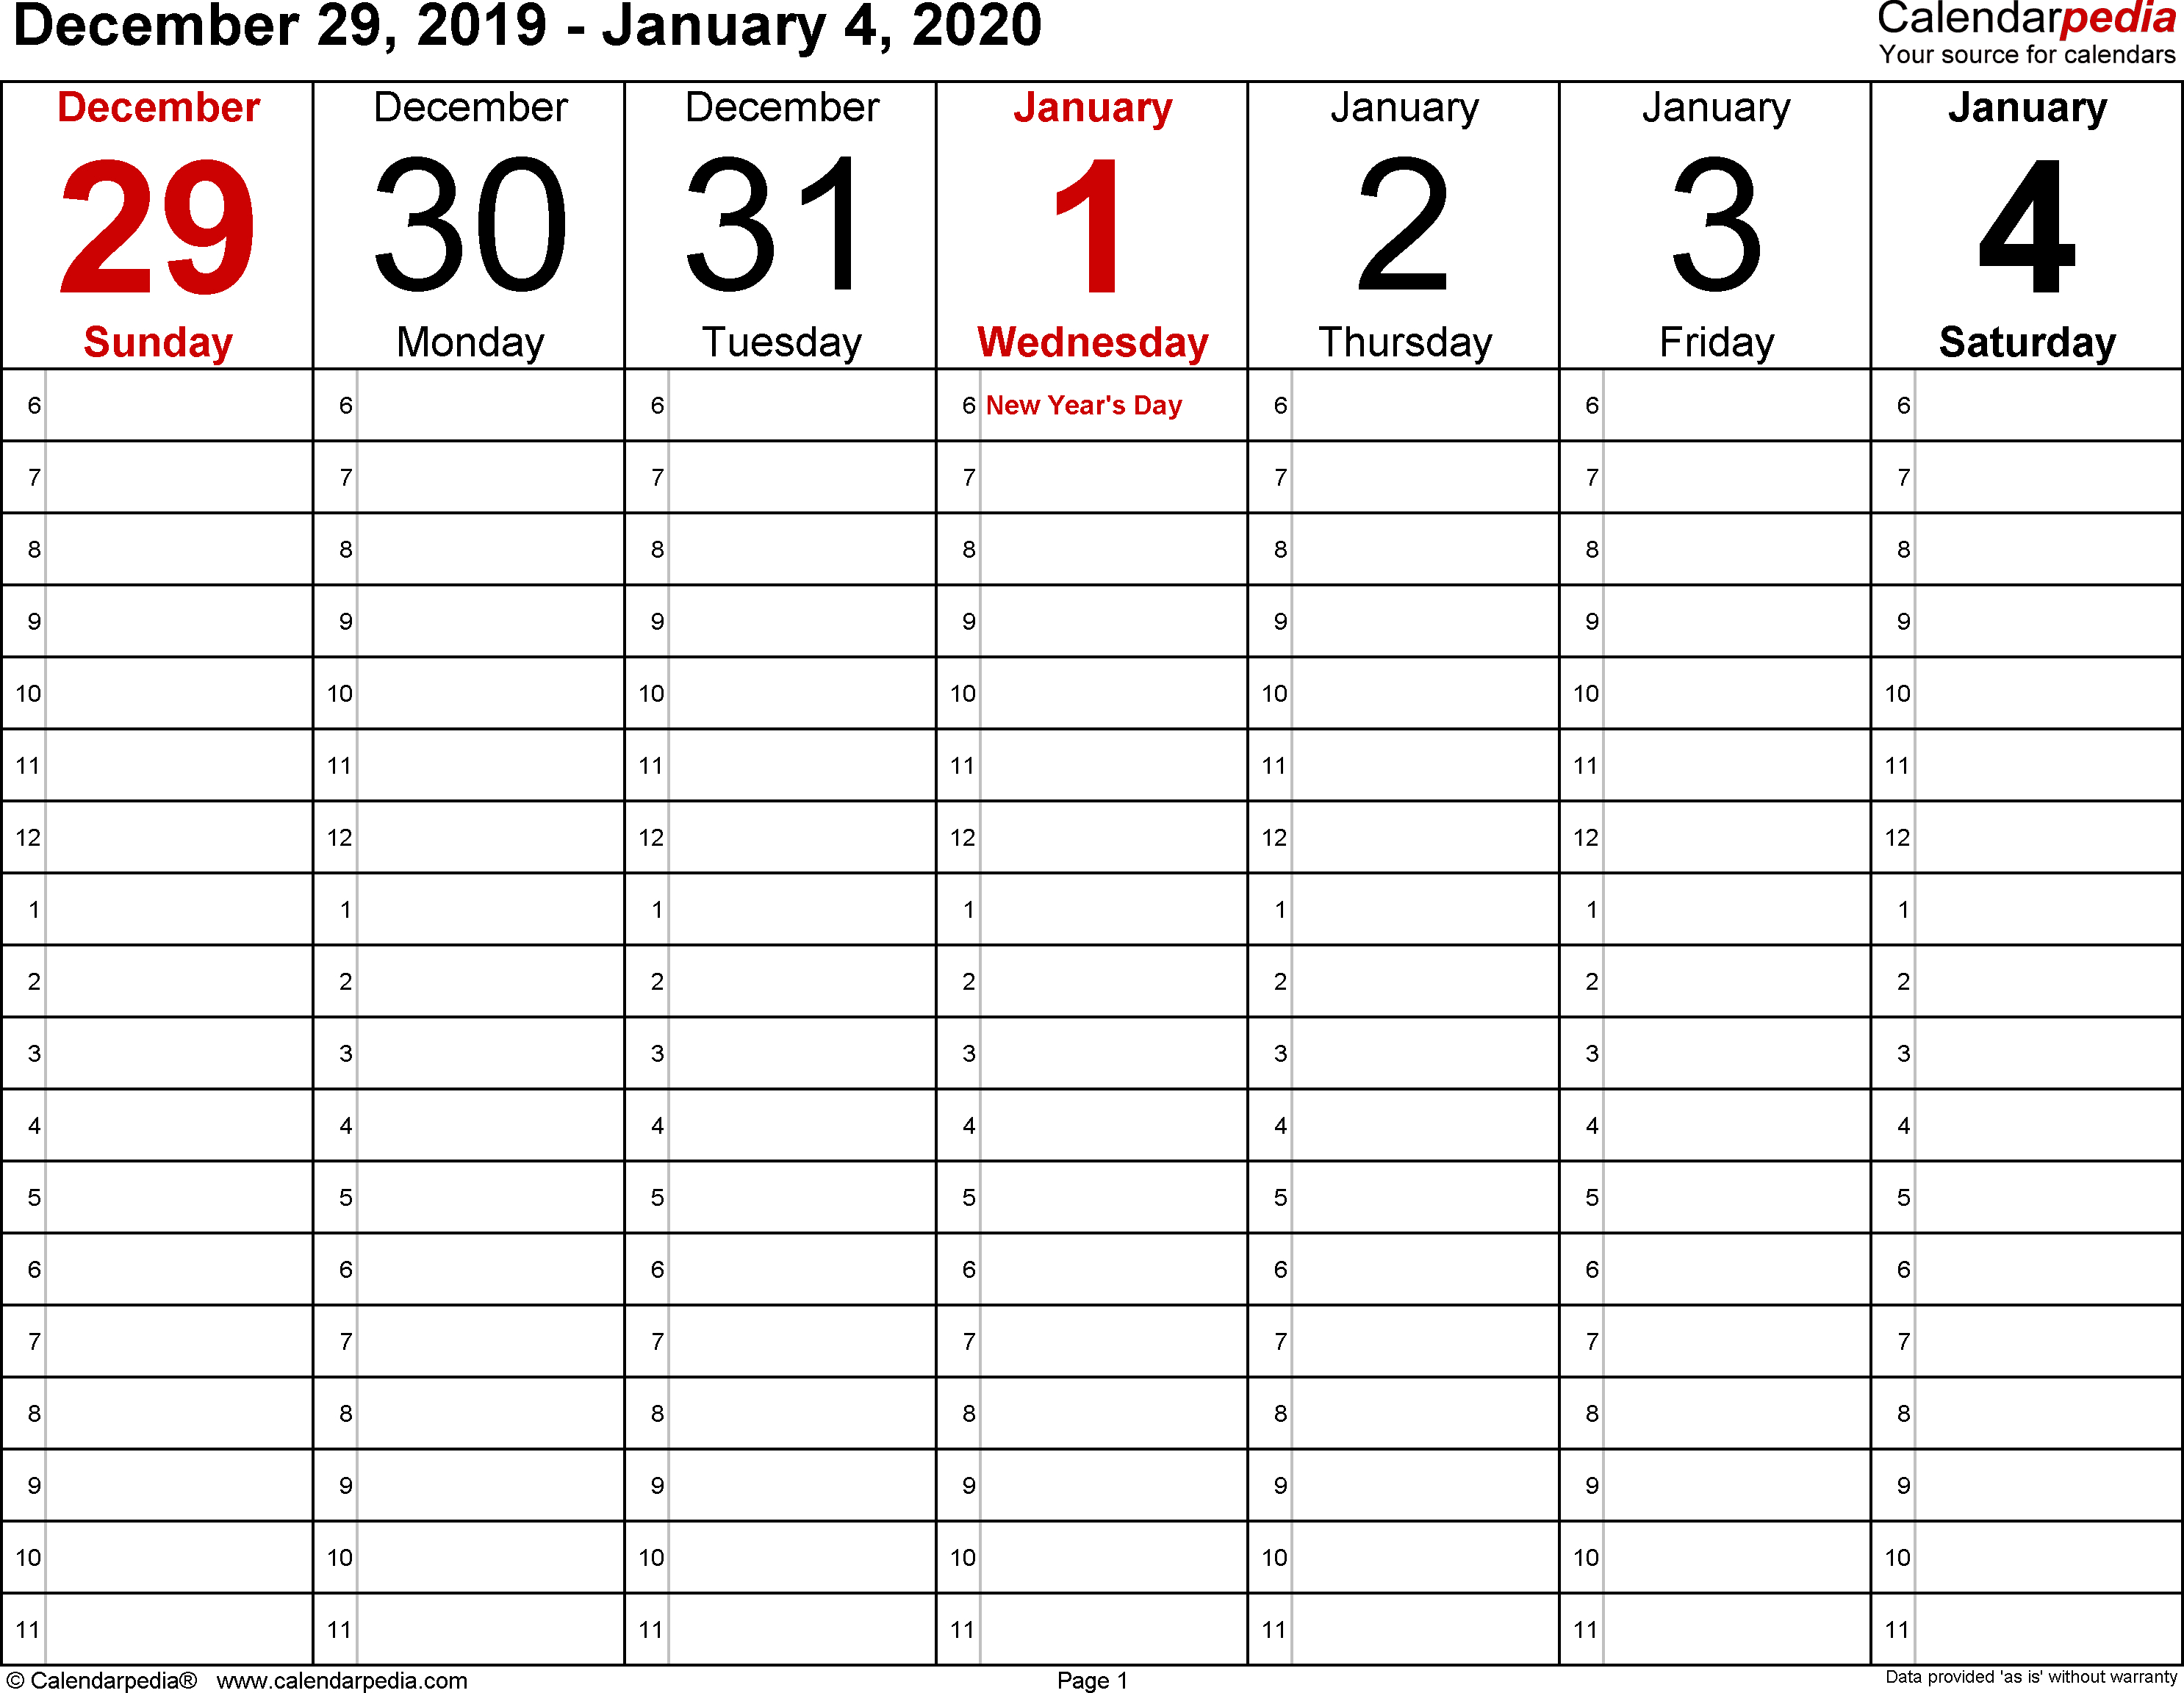 Weekly Calendar 2020 For Word - 12 Free Printable Templates inside 11 X 8.5 Calendar Pages 2020 Free